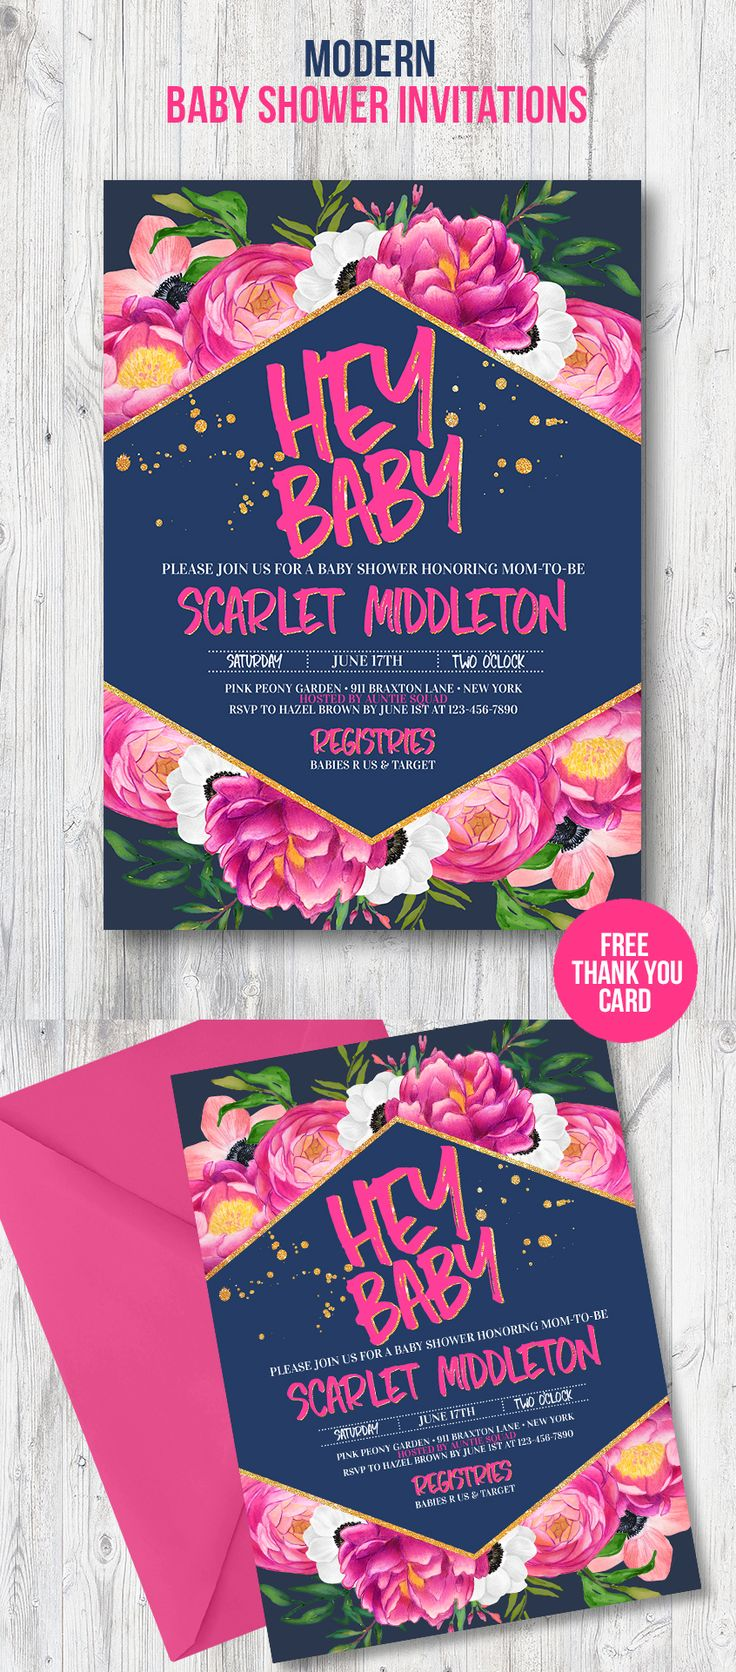 jungle theme baby shower invitation sayings%0A Modern baby shower invitation for your trendy party theme with pink peonies  and anemones with gold